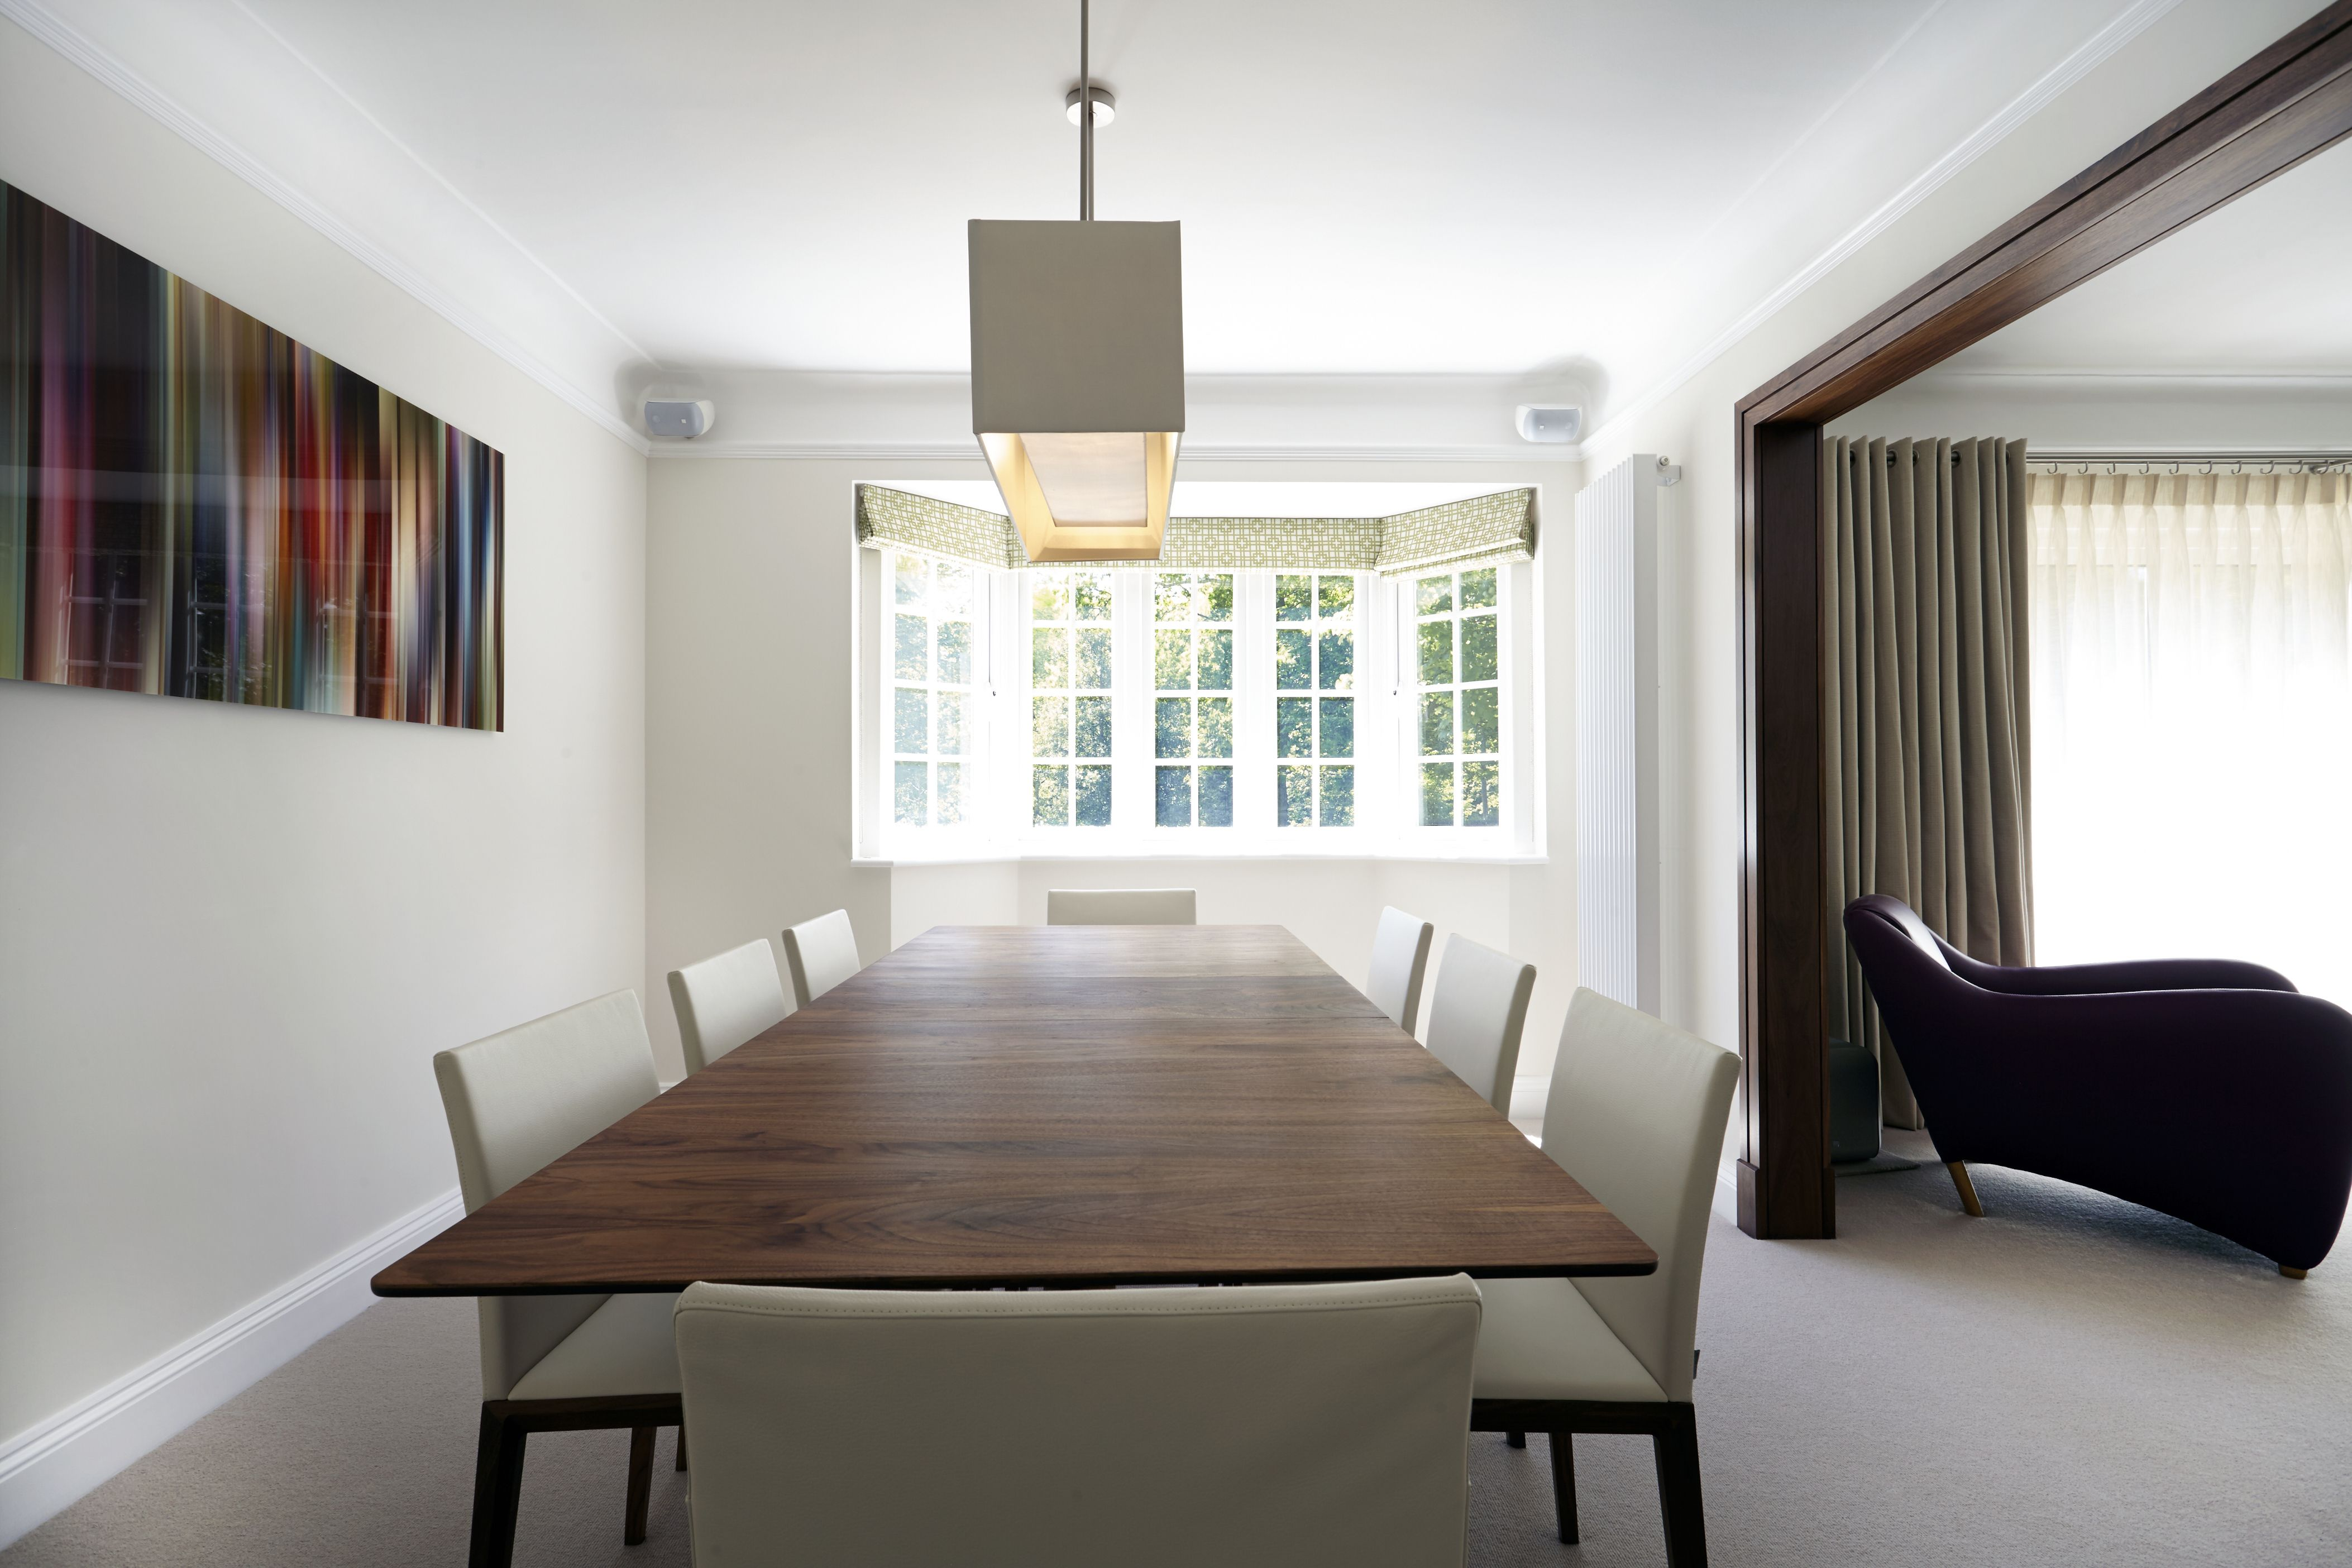 Contemporary dining room | Table by Matthew Hilton | Chairs by Walter Knoll | Interior design by www.newlandinteriors.co.uk